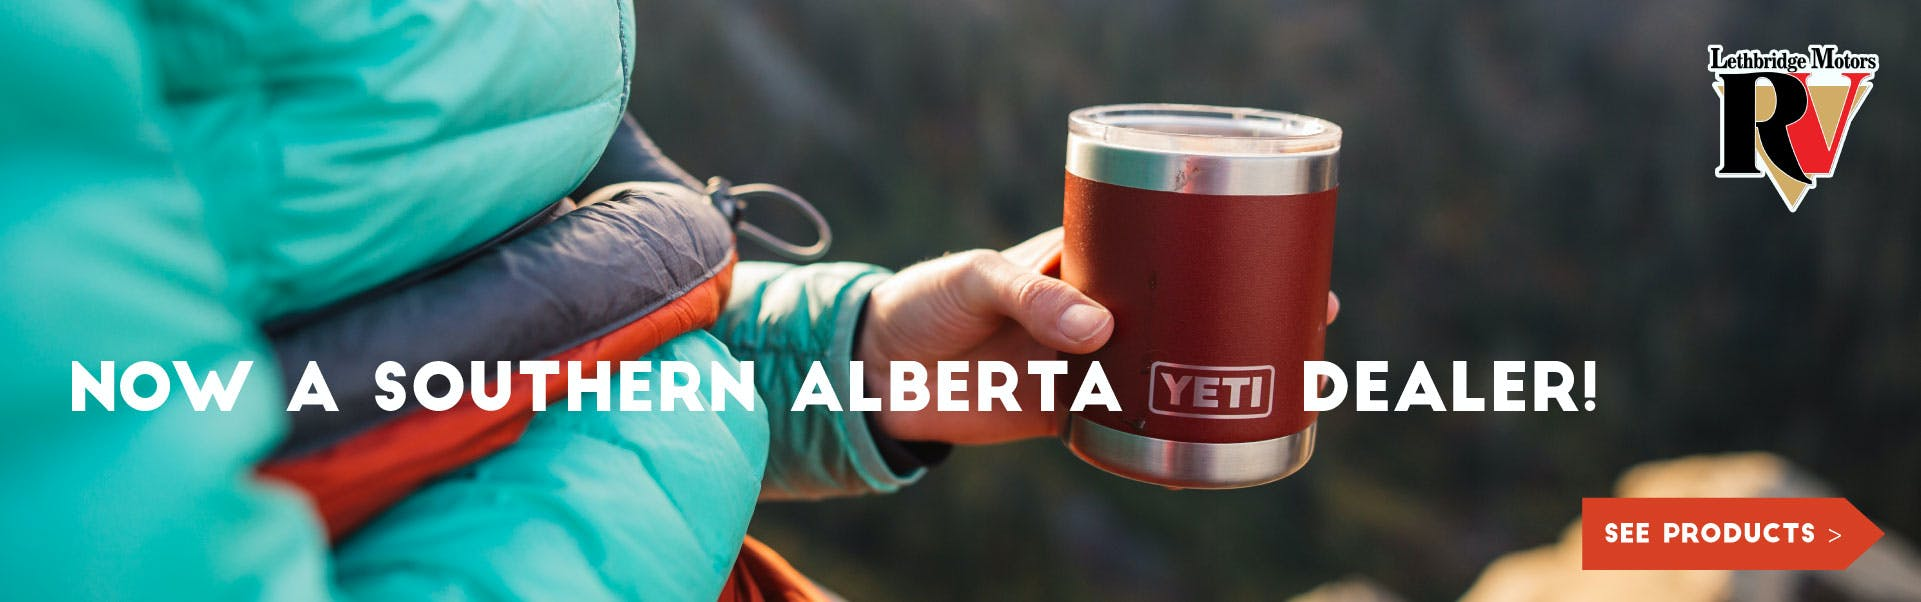 woman camping and drinking tea out of a red yeti coffee mug